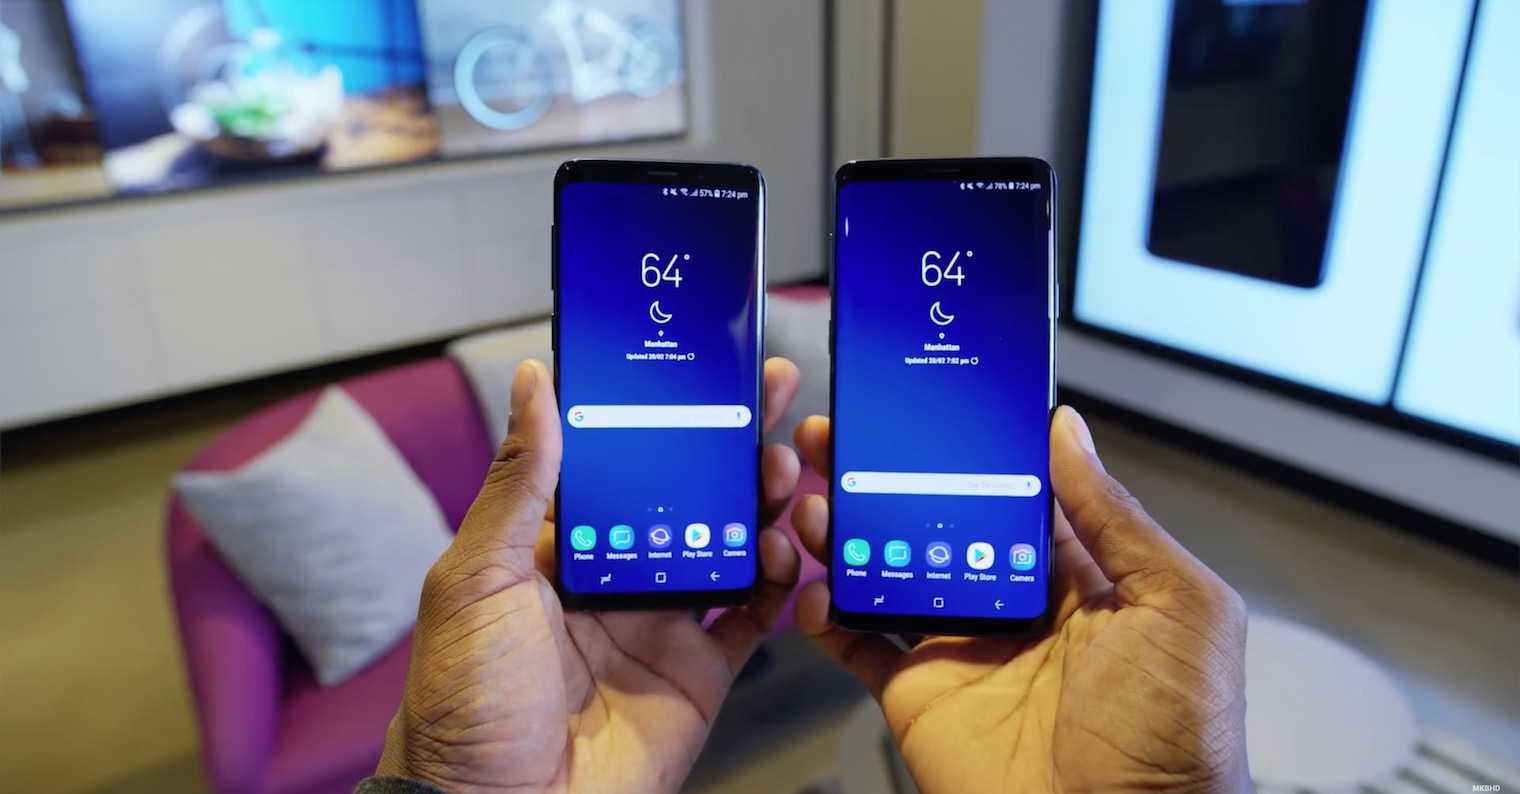 Samsung Galaxy S9 S9 Plus hands FB